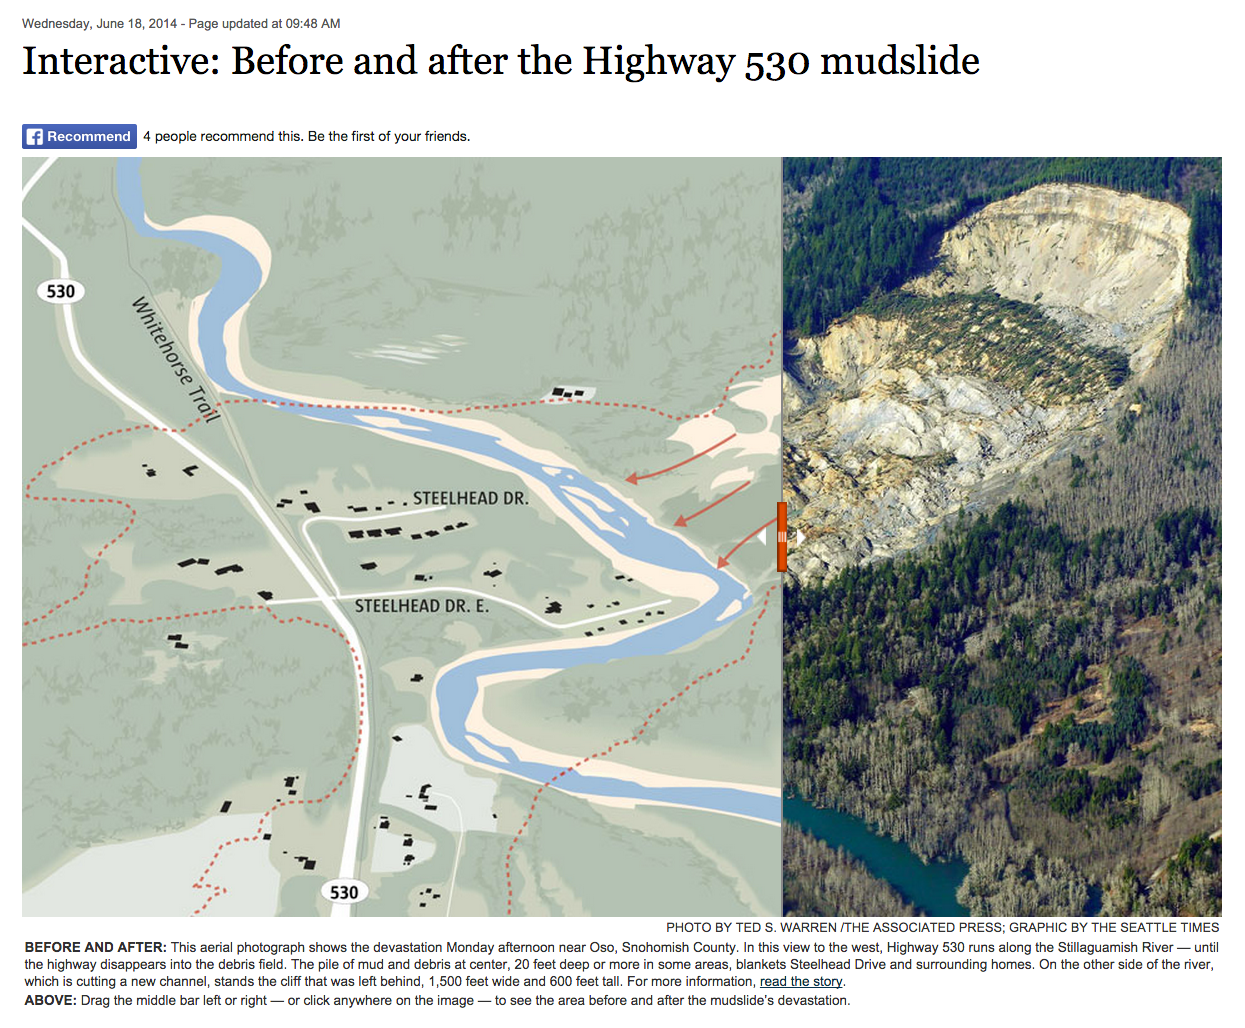 This slider was an impactful way to illustrate the devastation of the Oso landslide. It was part of the Pulitzer Prize winning coverage the tragic event.